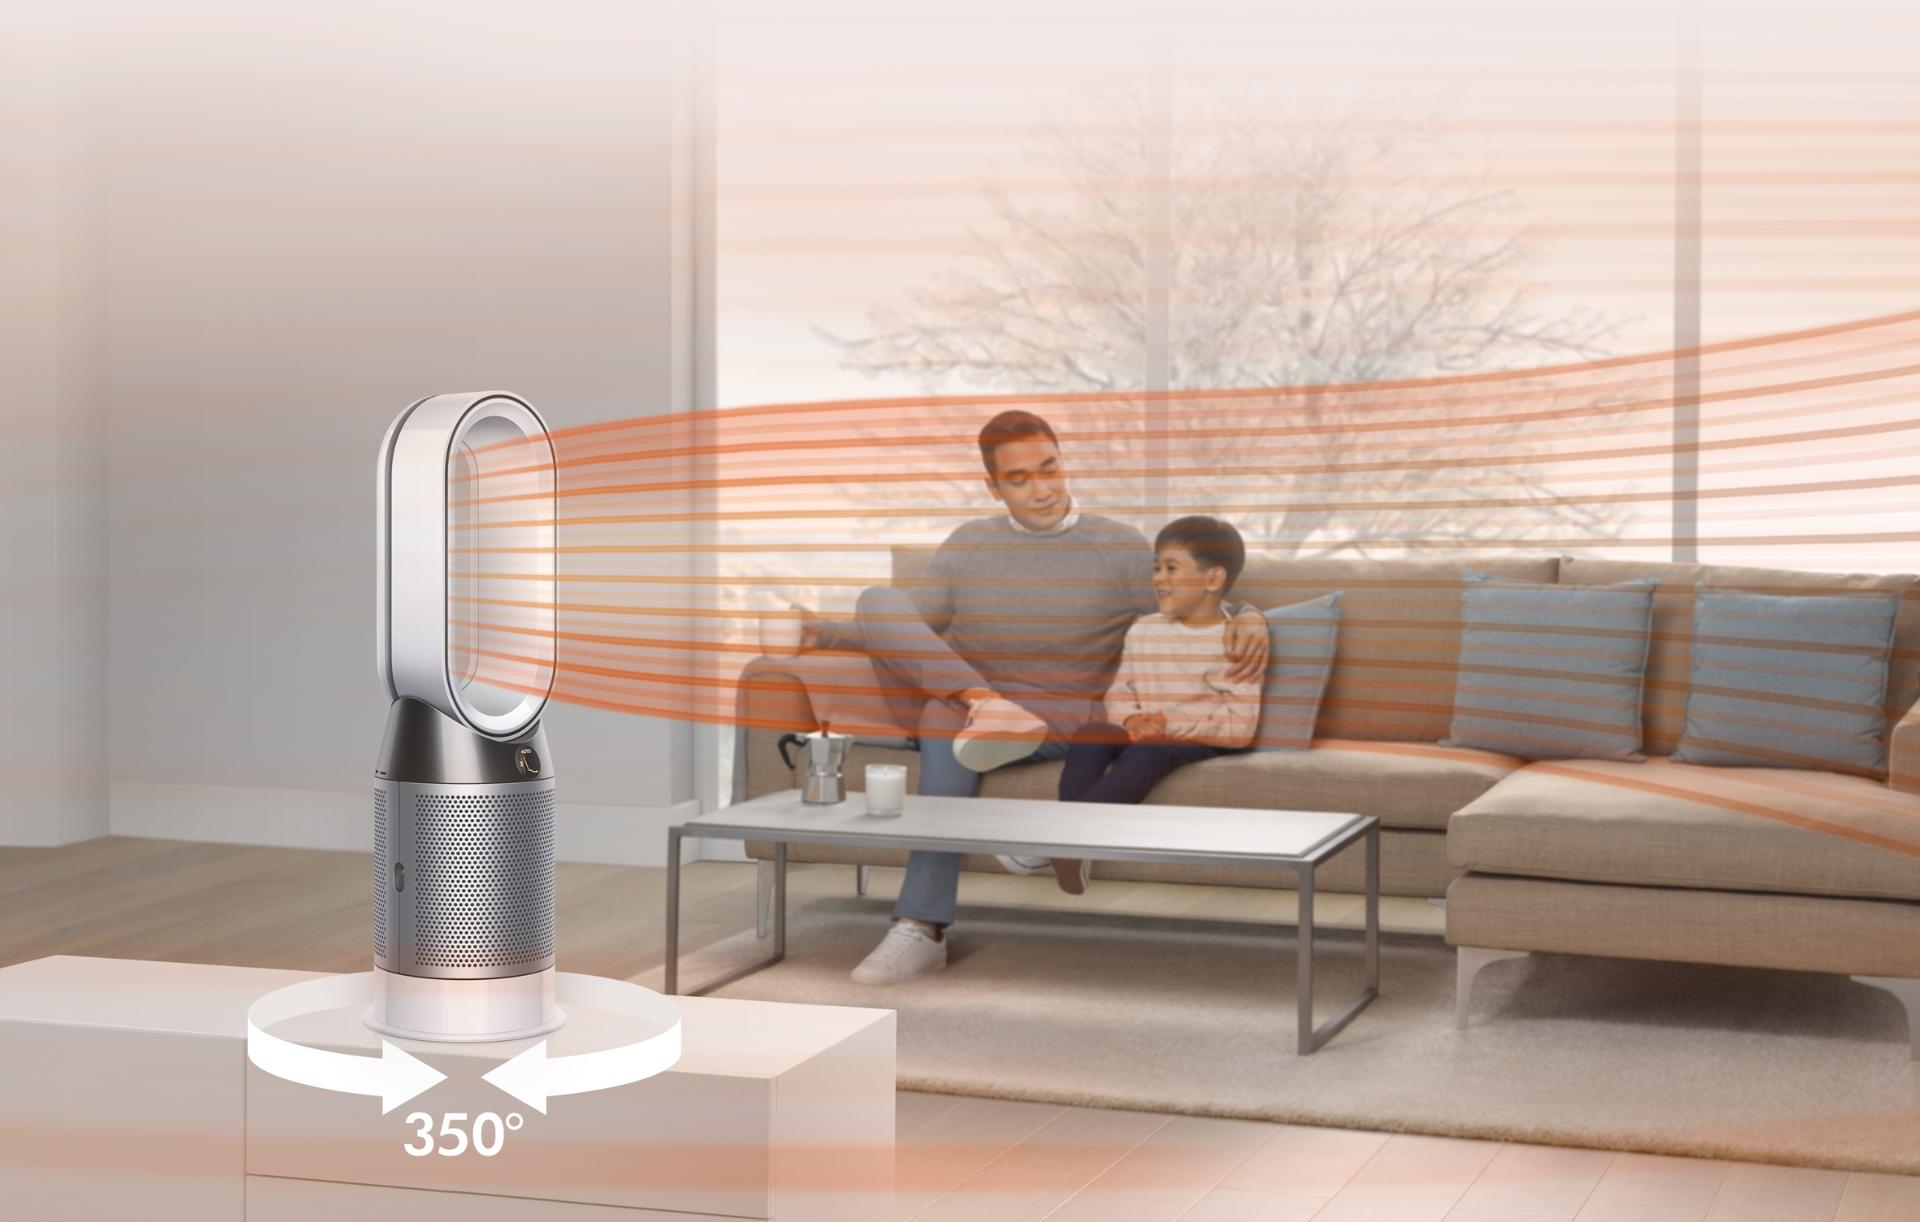 Dyson Pure Hot+Cool purifier inside family home